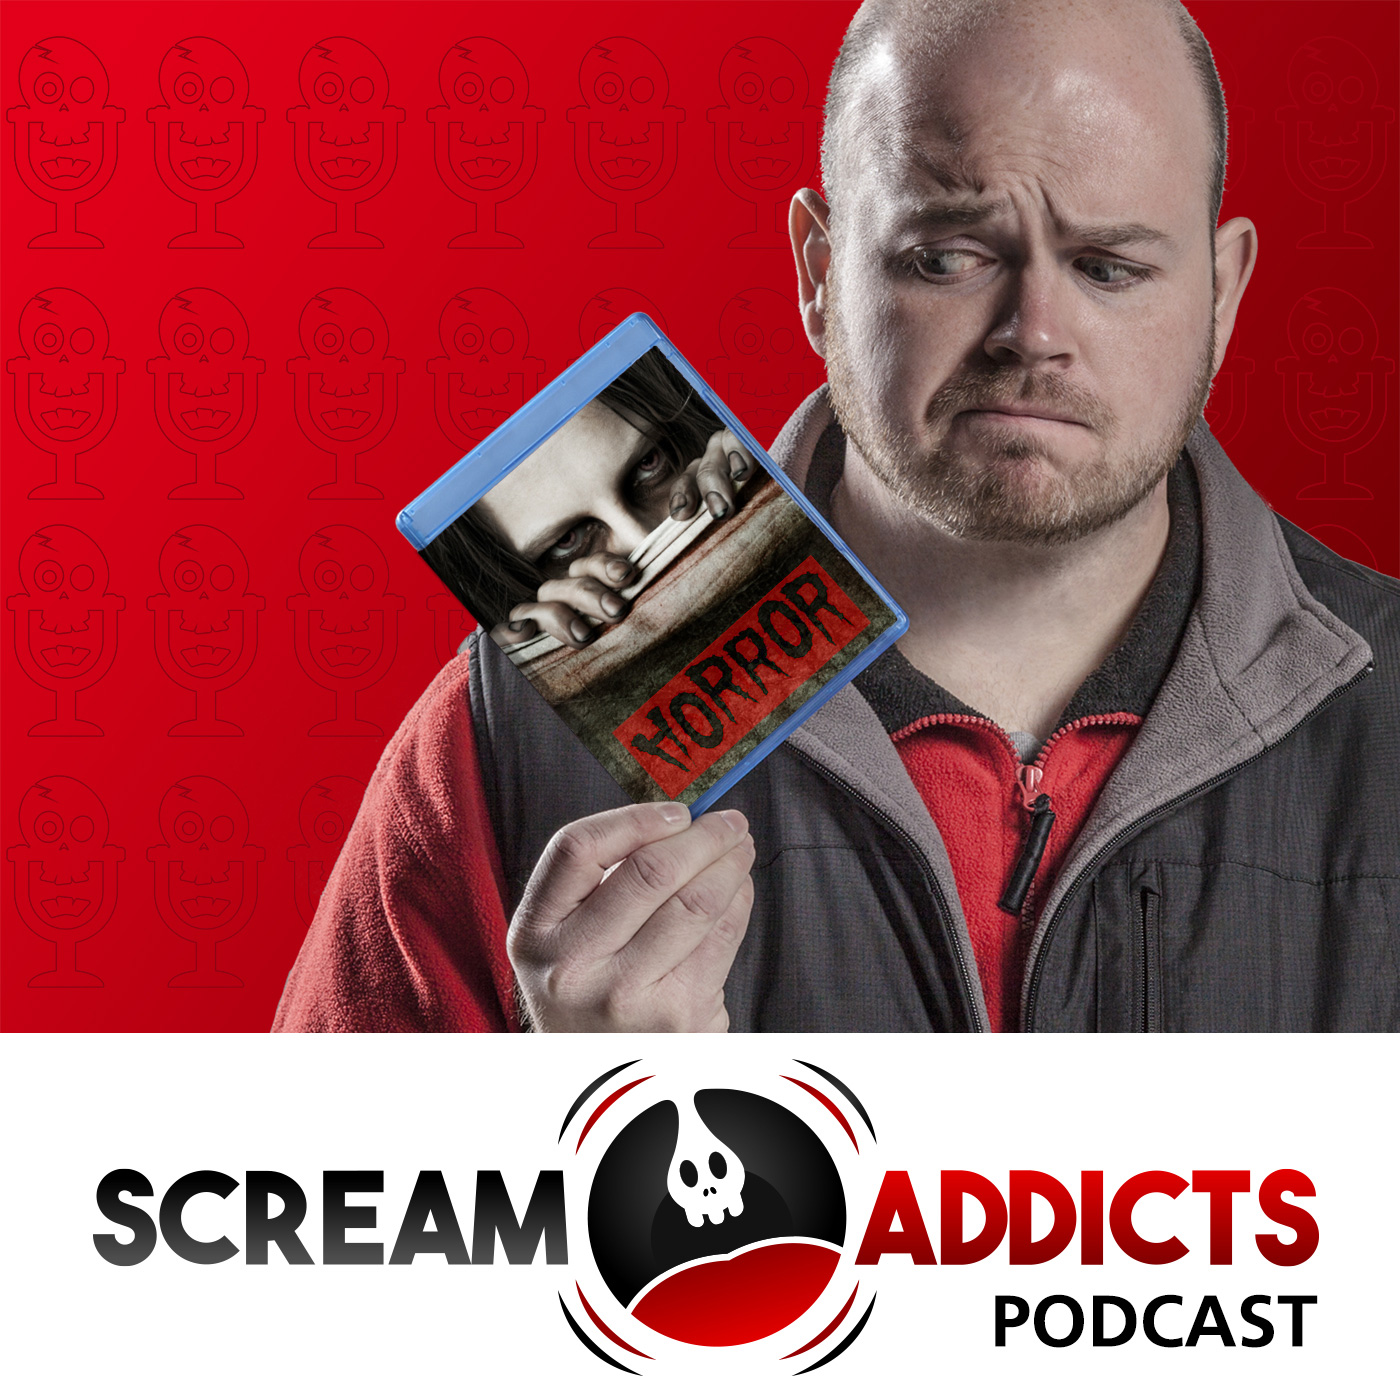 Scream Addicts Podcast: Horror movies | Movie reviews | Horror